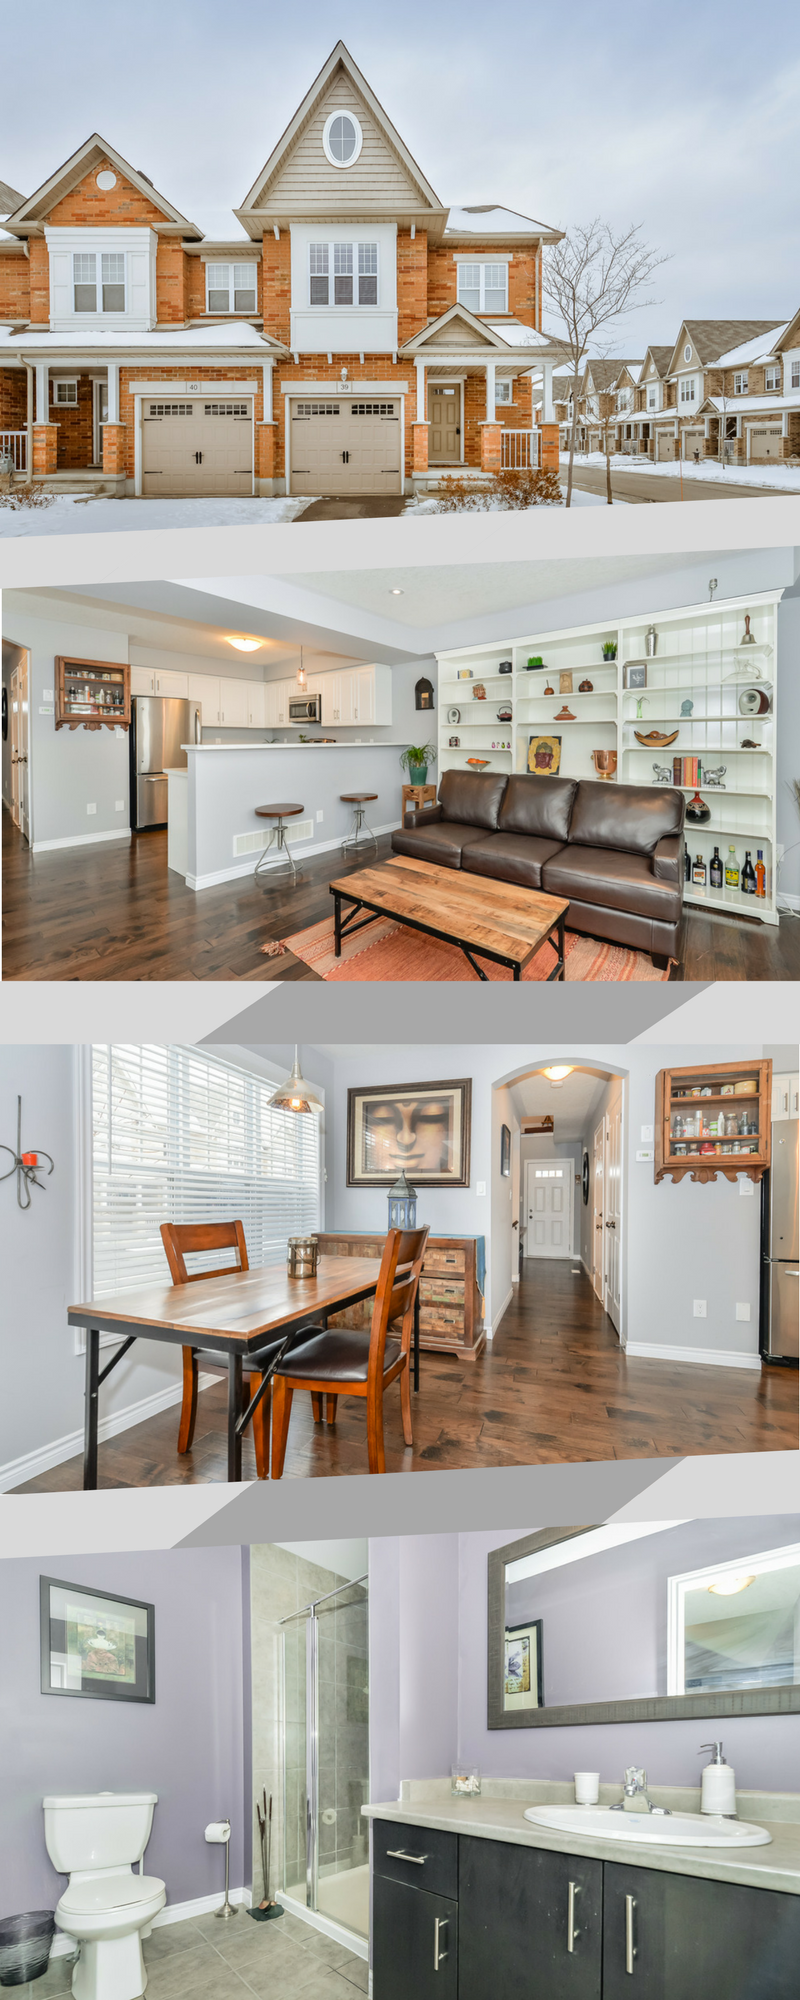 OPEN HOUSE! Truly impressive END UNIT located in sought